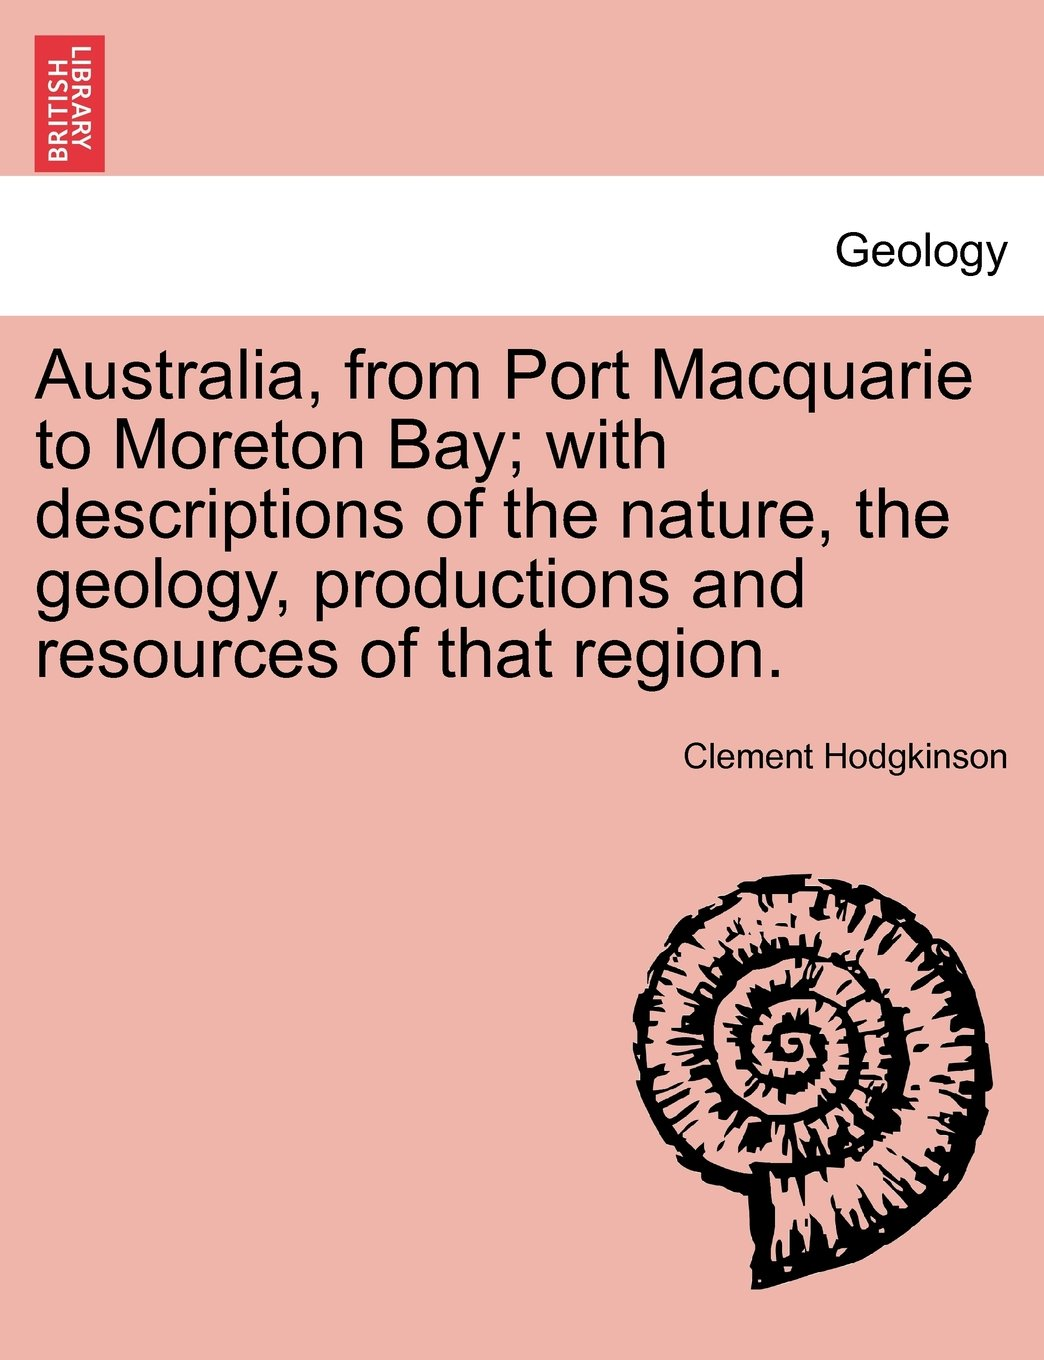 Australia, from Port Macquarie to Moreton Bay; with descriptions of the nature, the geology, productions and resources of that region. PDF